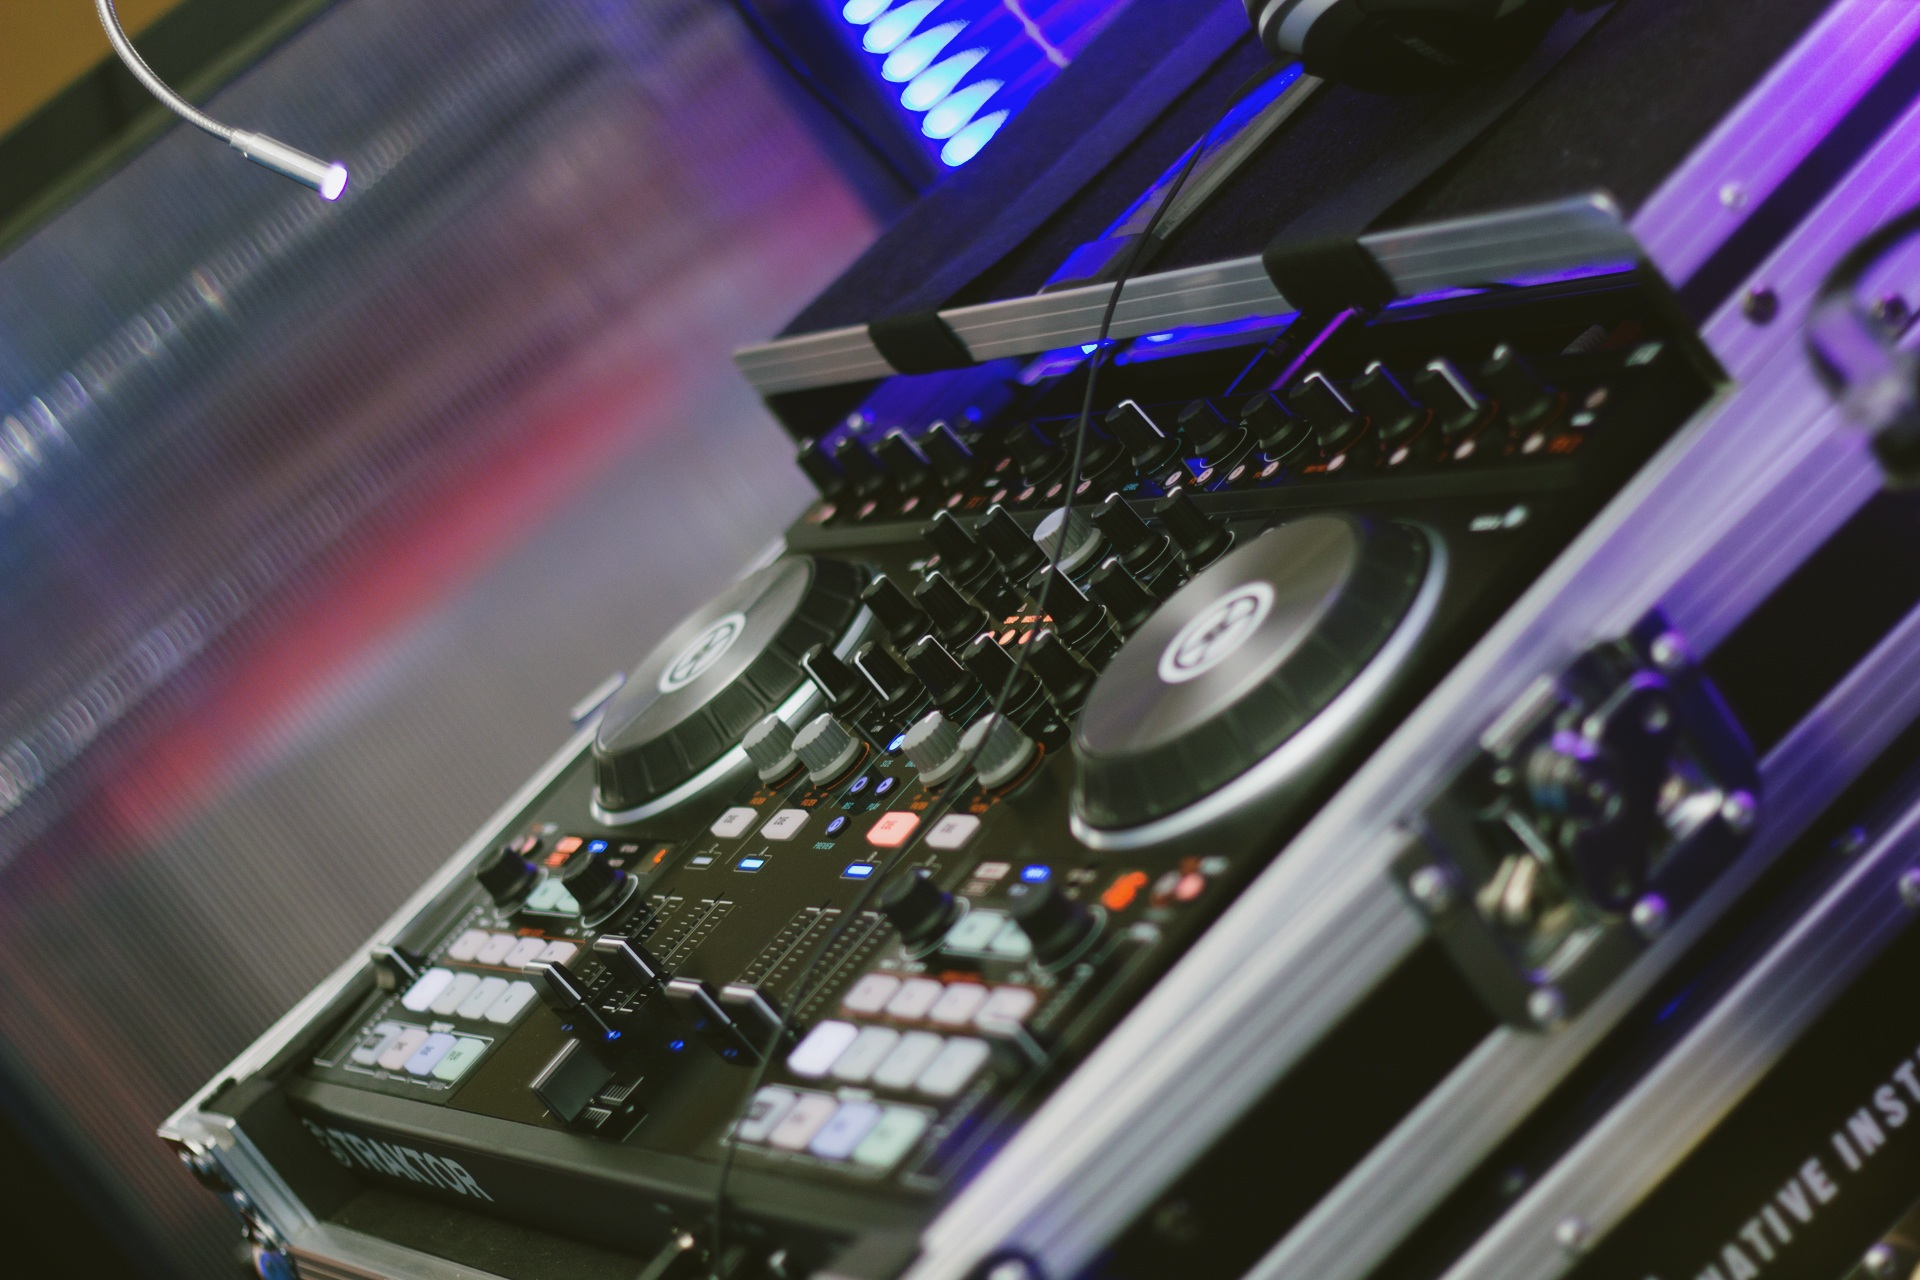 plete Dj Set Up Pioneer Cdjs Djm Speakers And More 217245 furthermore Namm 2016 Denon Dj Mcx8000 Seratoengine Controller moreover New Pioneer Dj Controller Hooks Your Iphone Ipad And Ipod Touch Some Mobile Mixing also  moreover Showthread. on pioneer dj